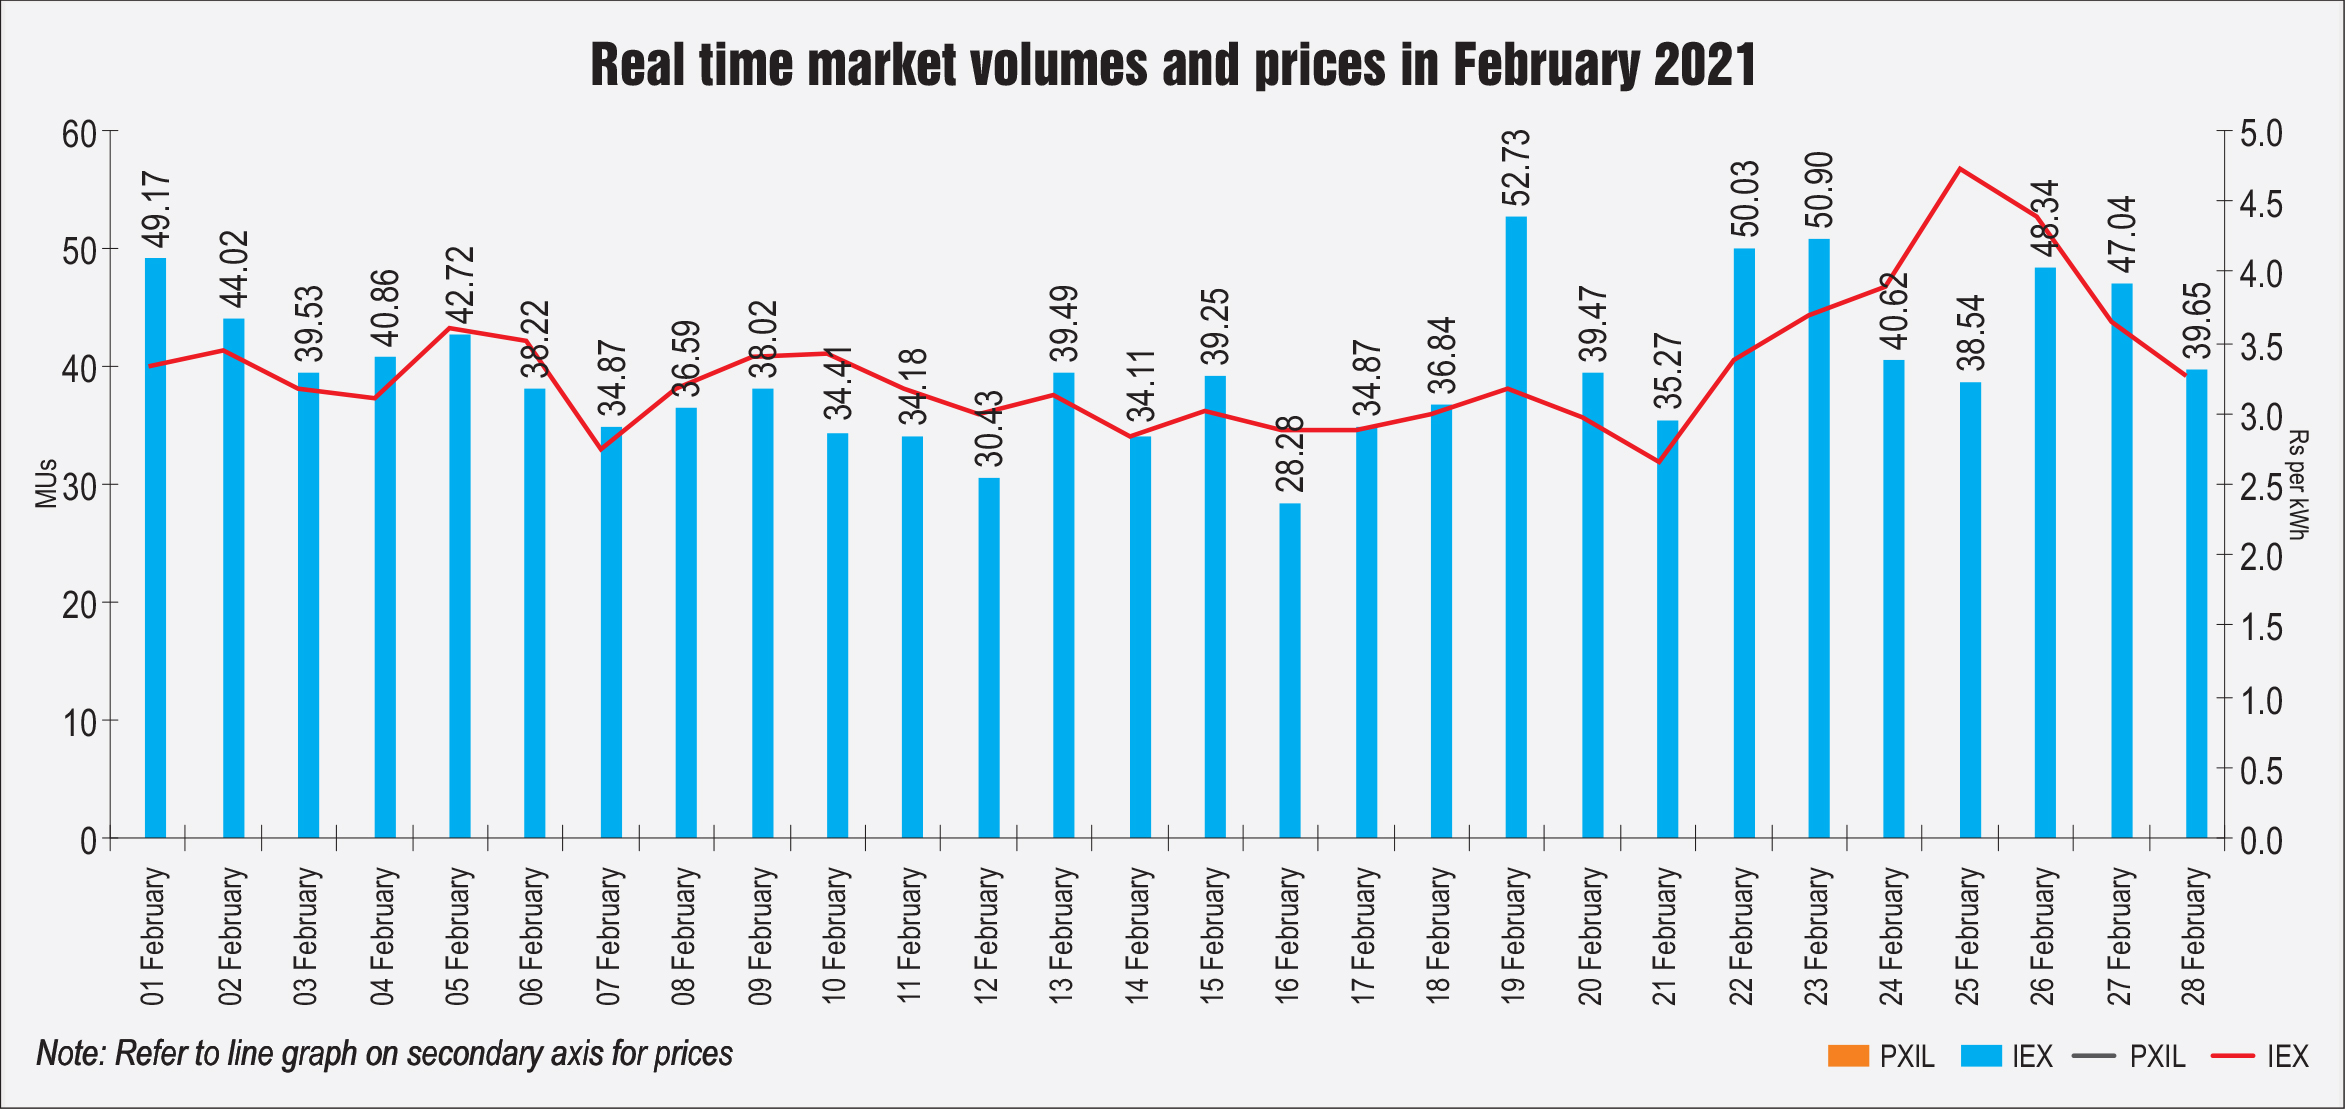 Real time market volumes and prices in February 2021